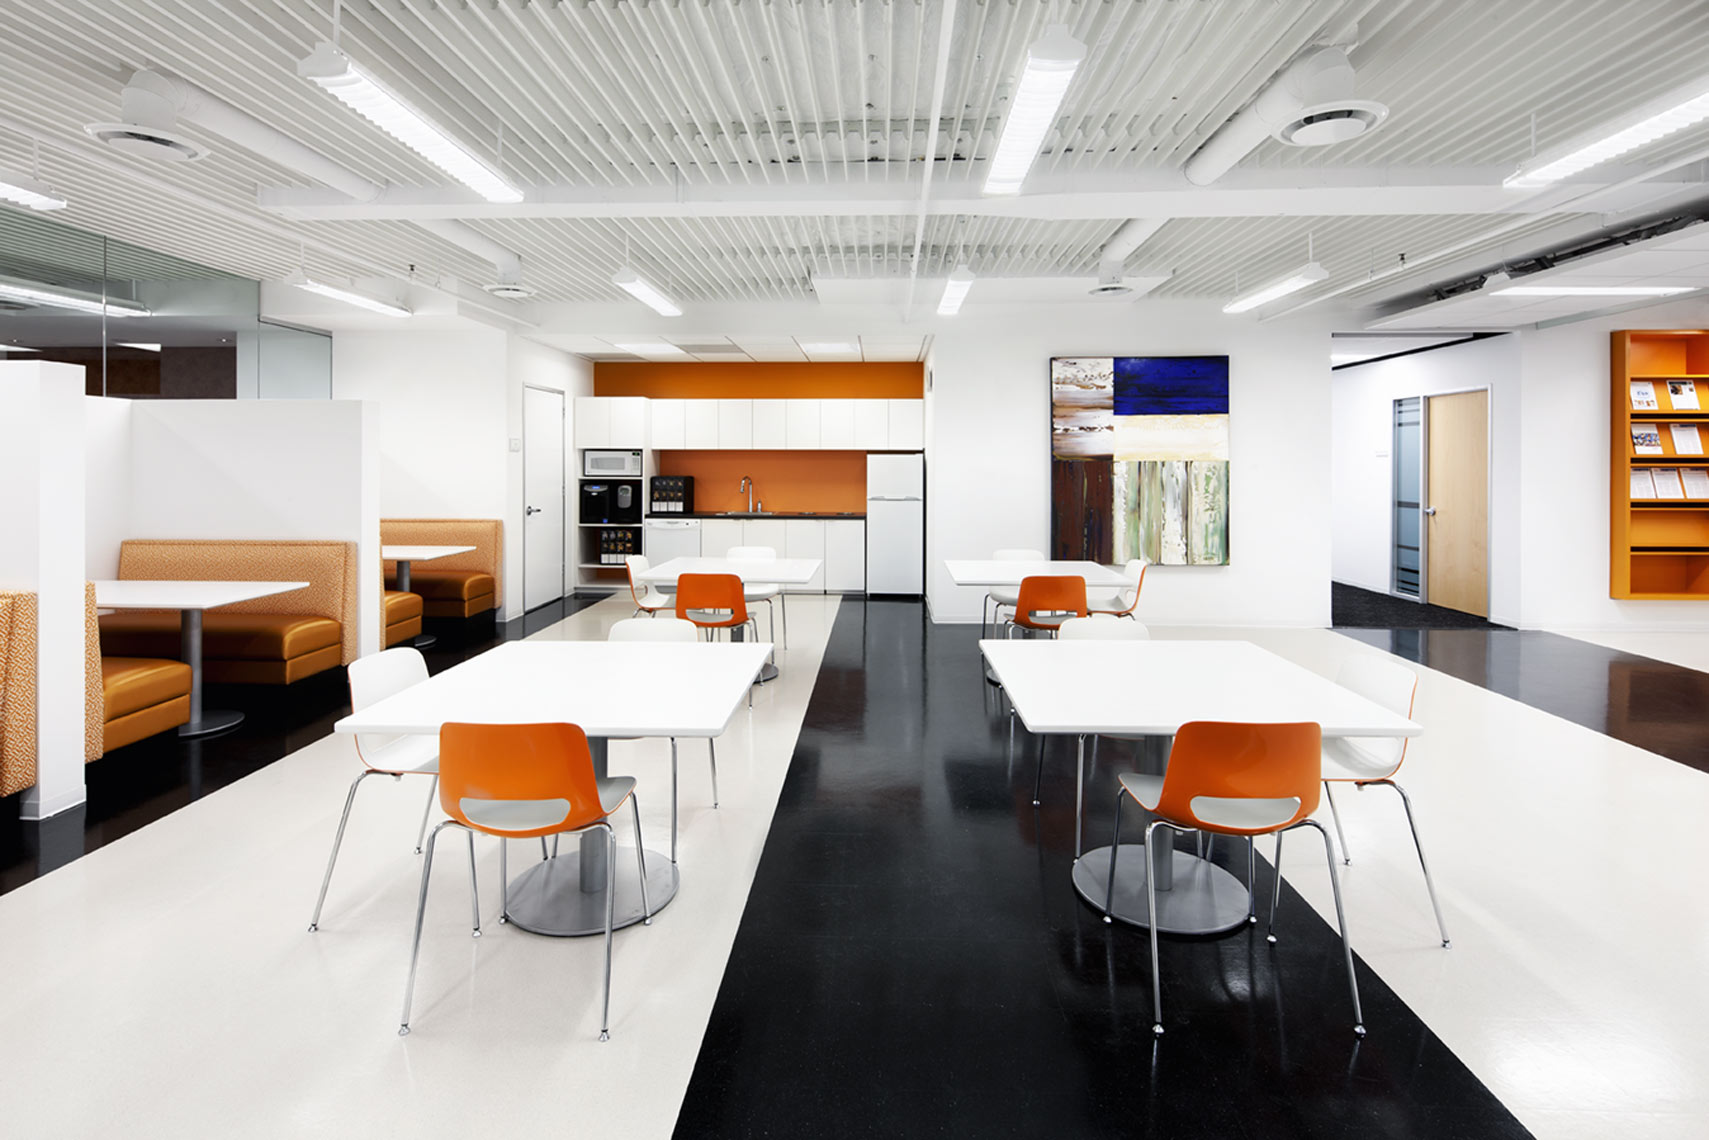 architectural photograph of an office building lunchroom by Dan Poyourow